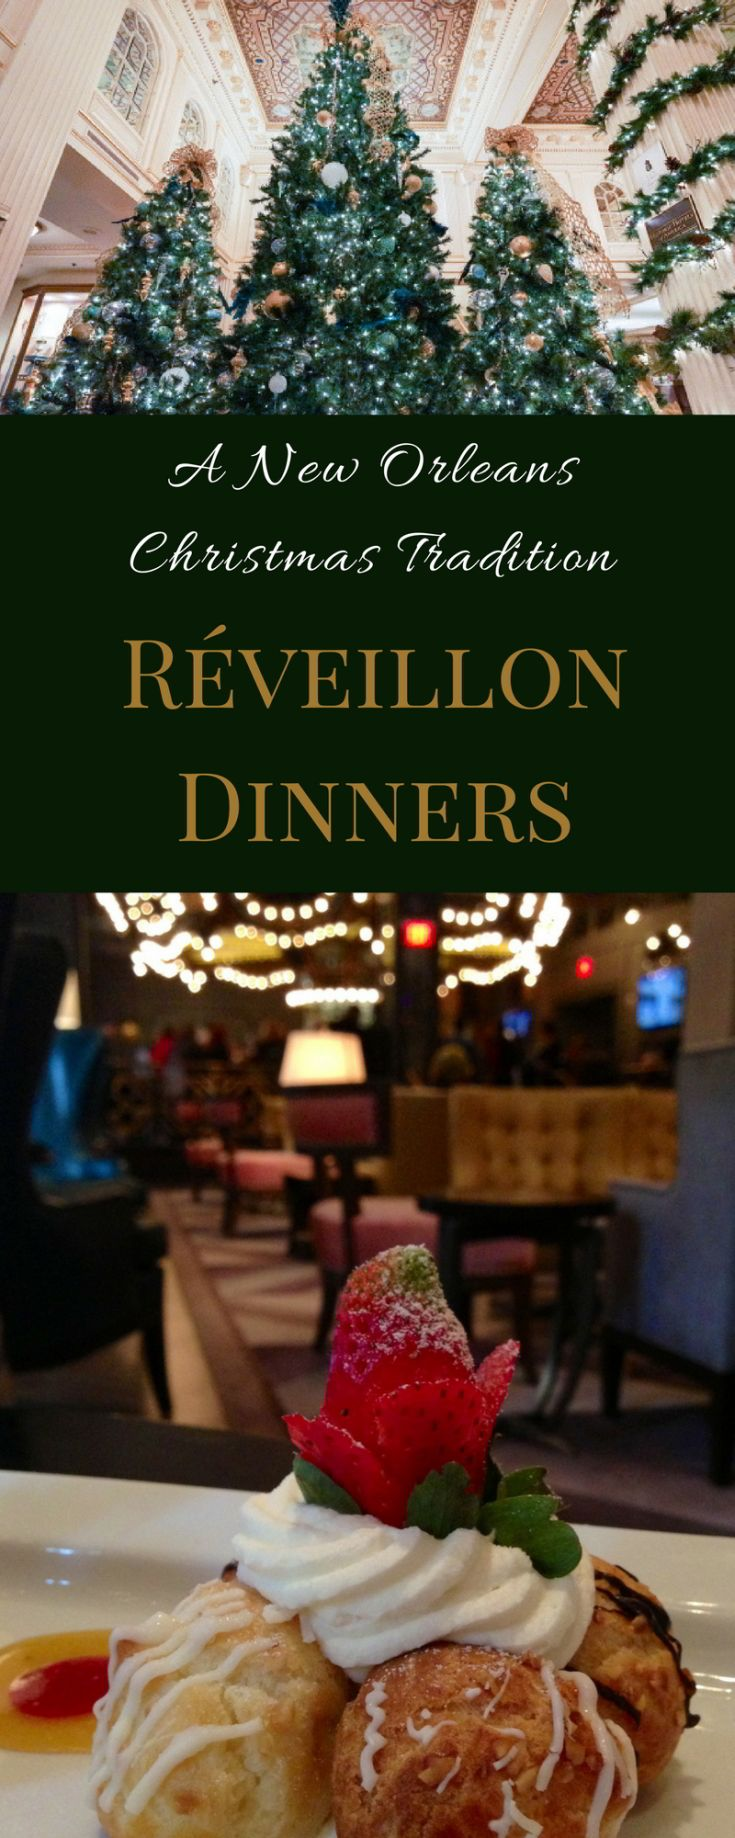 Reveillon dinners in New Orleans